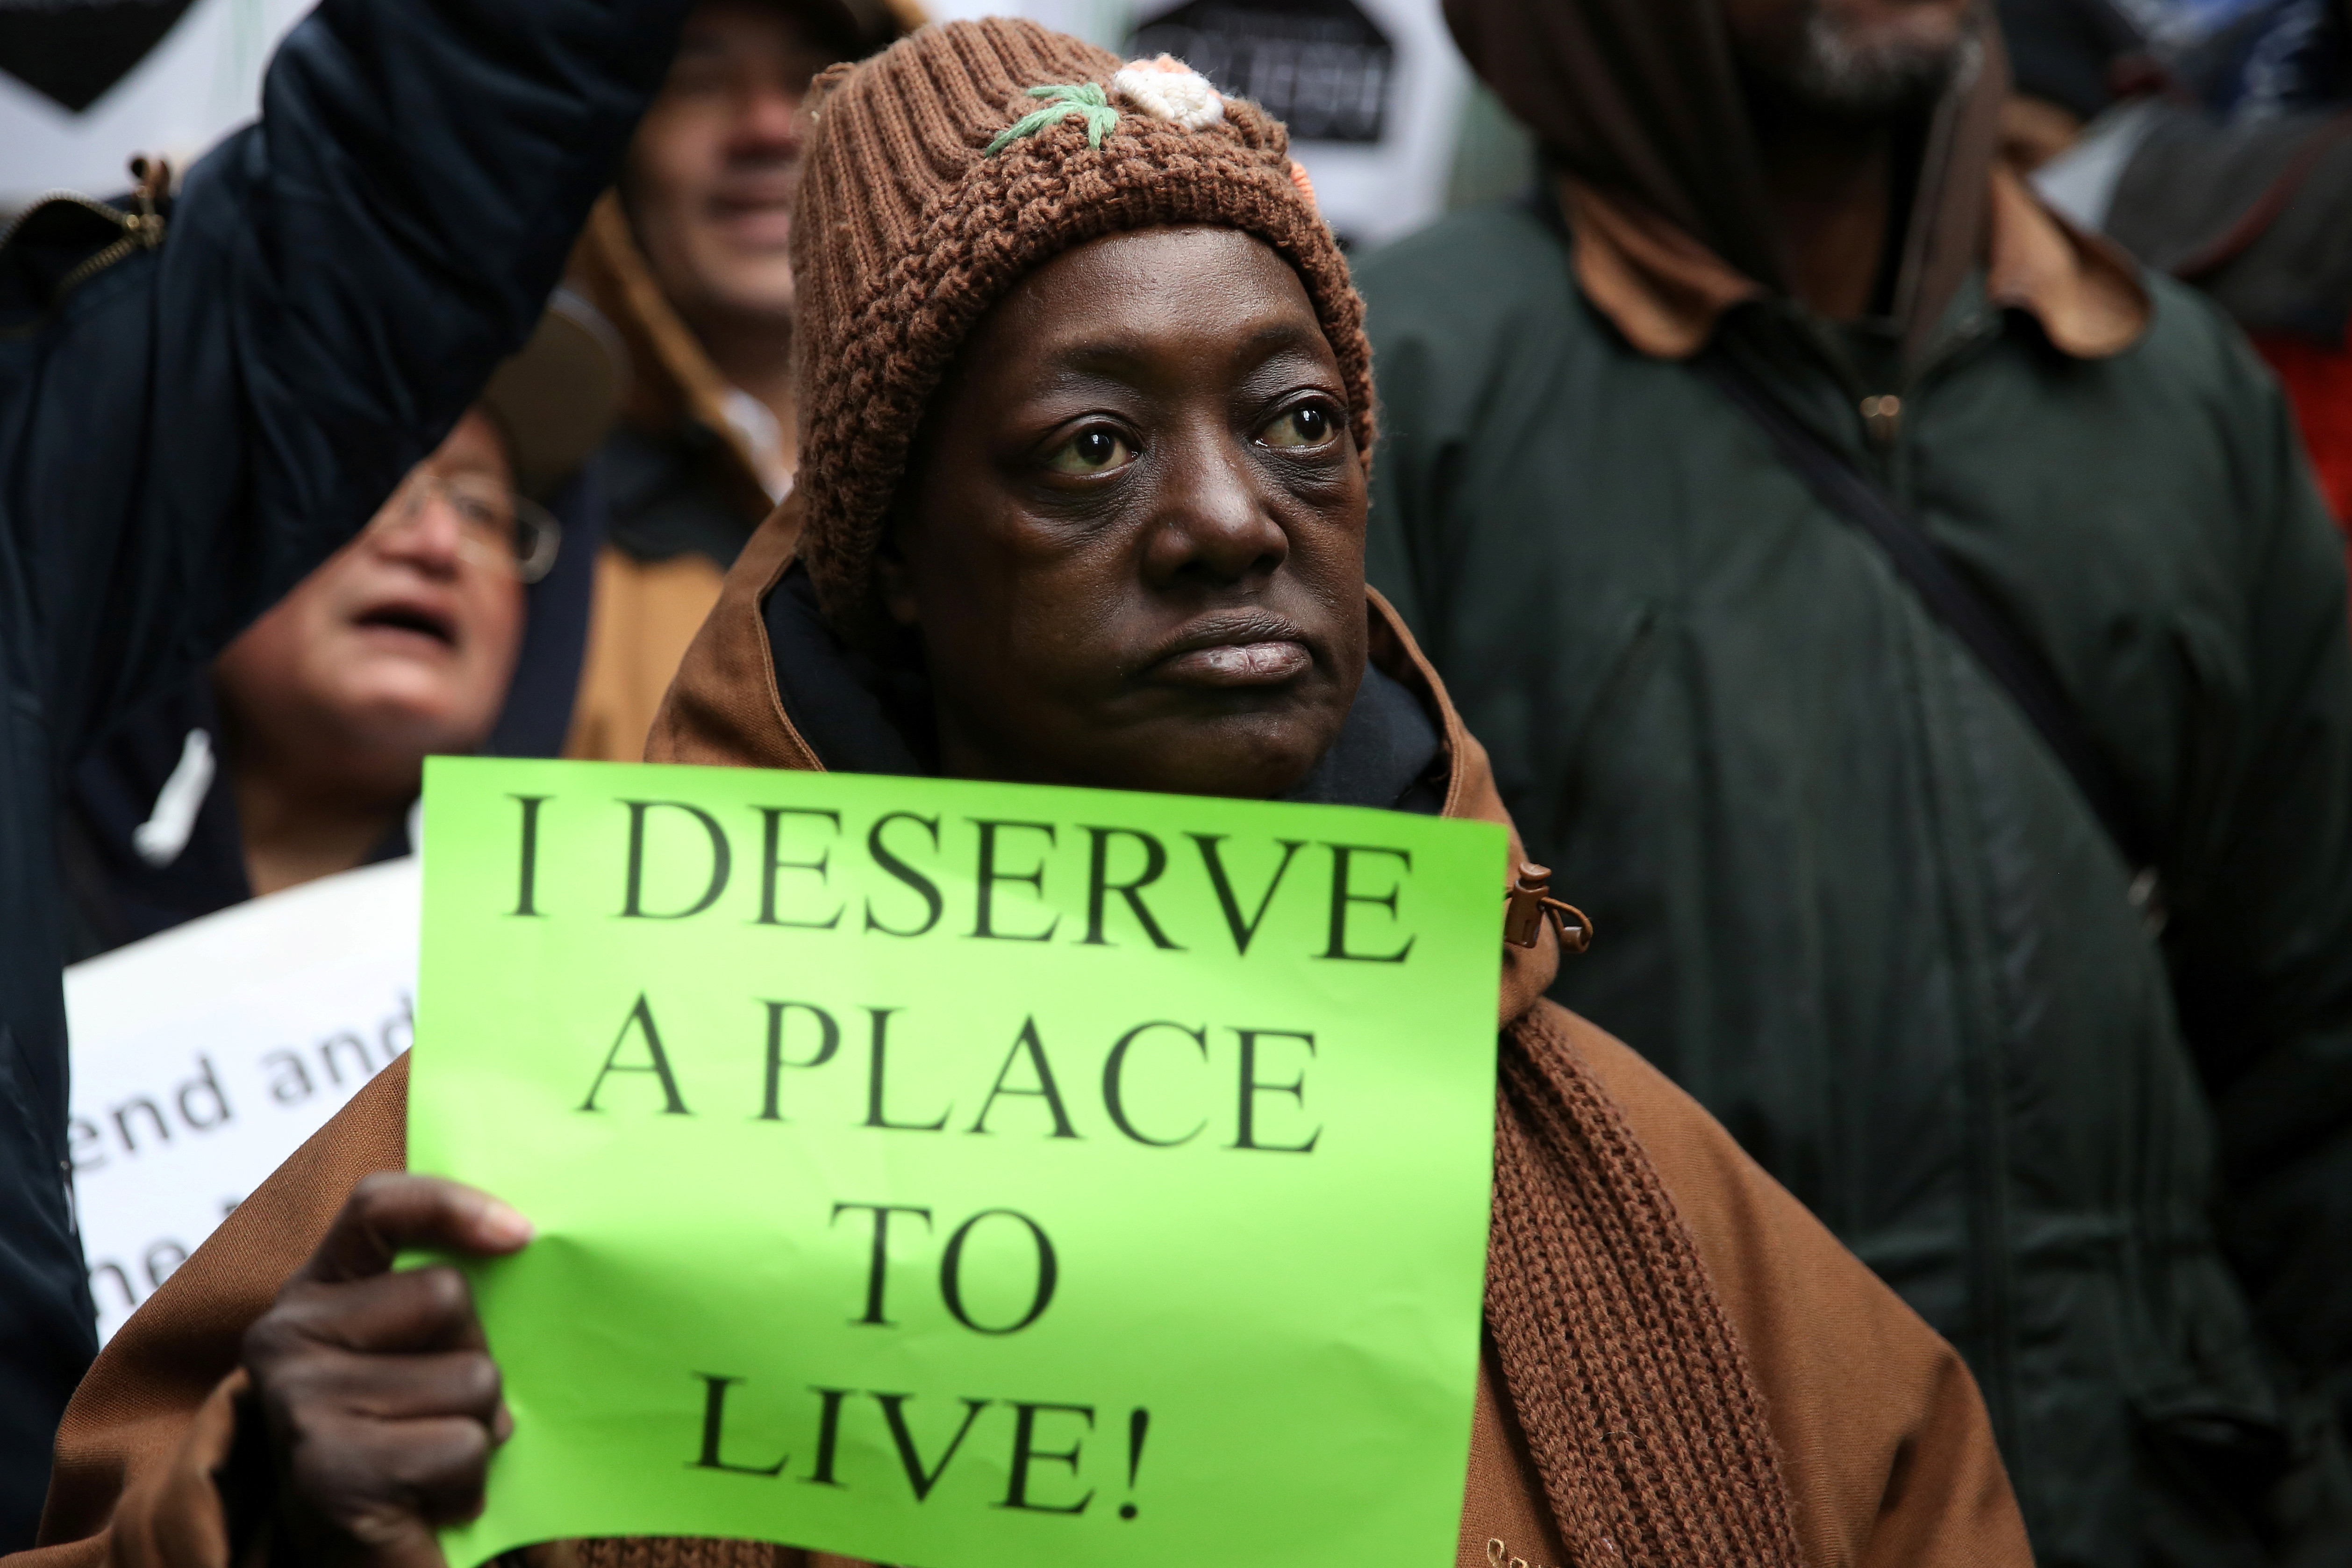 An activist holds a sign while taking part in a protest in support of anti-homelessness outside the office of New York Governor Andrew Cuomo in the Manhattan borough of New York, U.S. March 13, 2017. REUTERS/Ashlee Espinal - RC19F32C0660